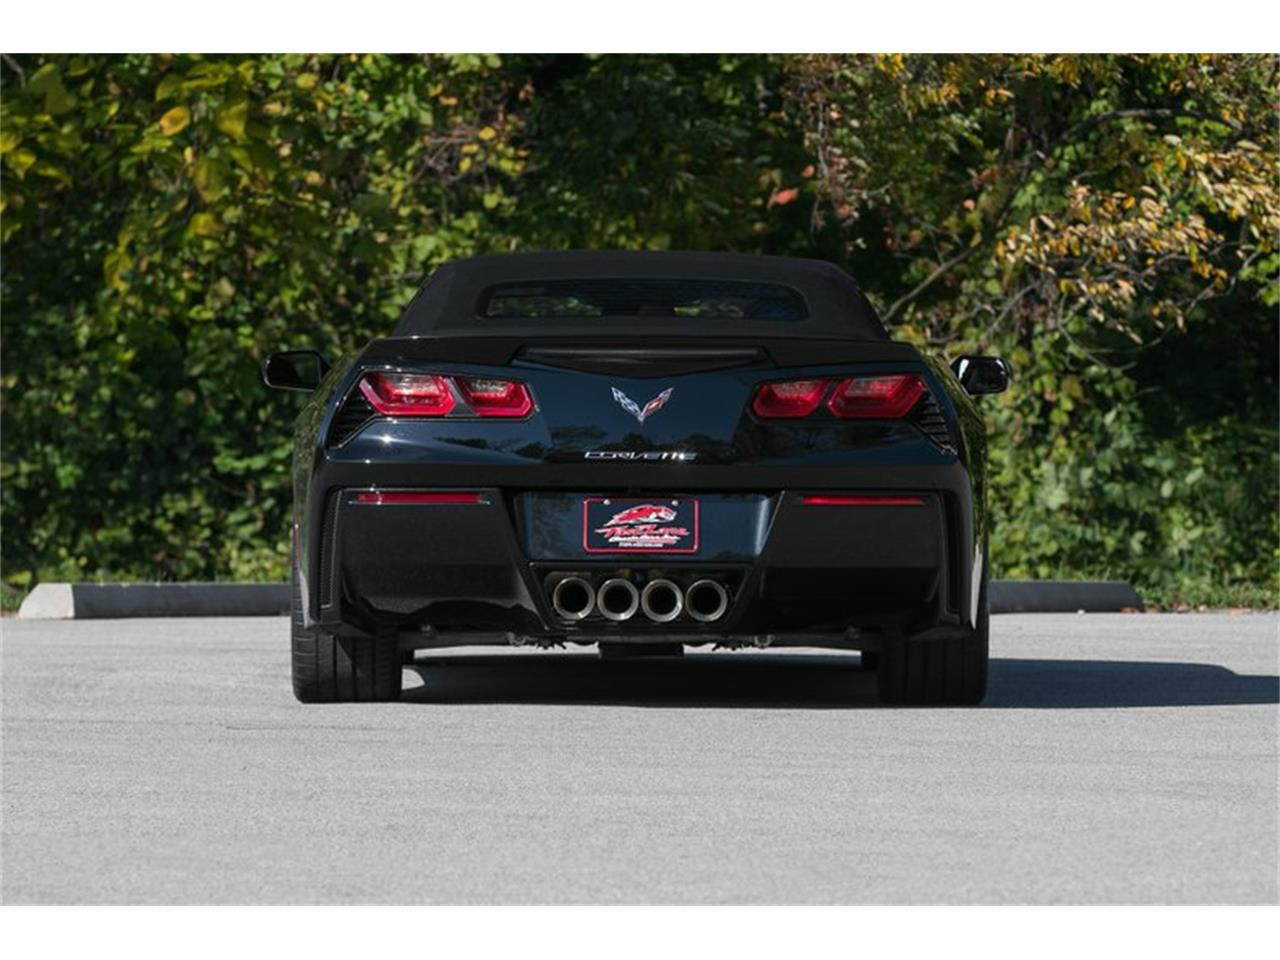 2016 Chevrolet Corvette for sale in St. Charles, MO – photo 7